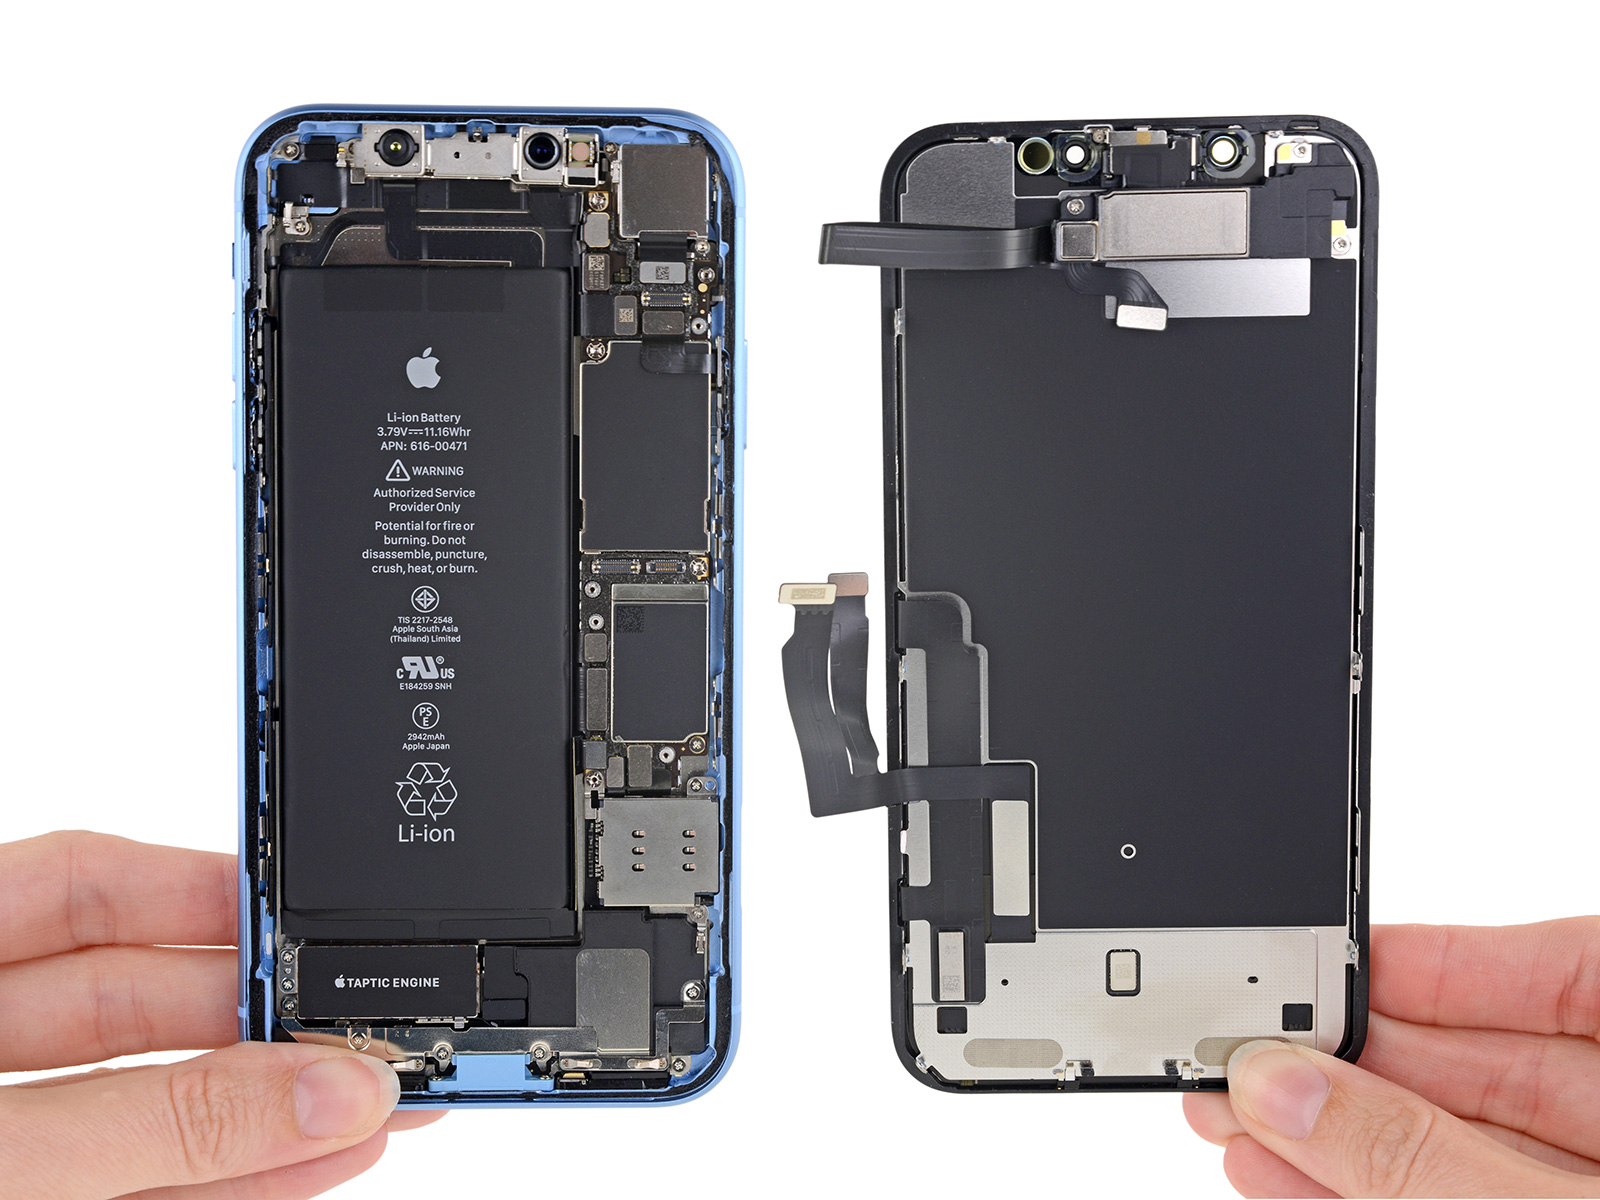 iPhone XR por dentro (vía iFixit)